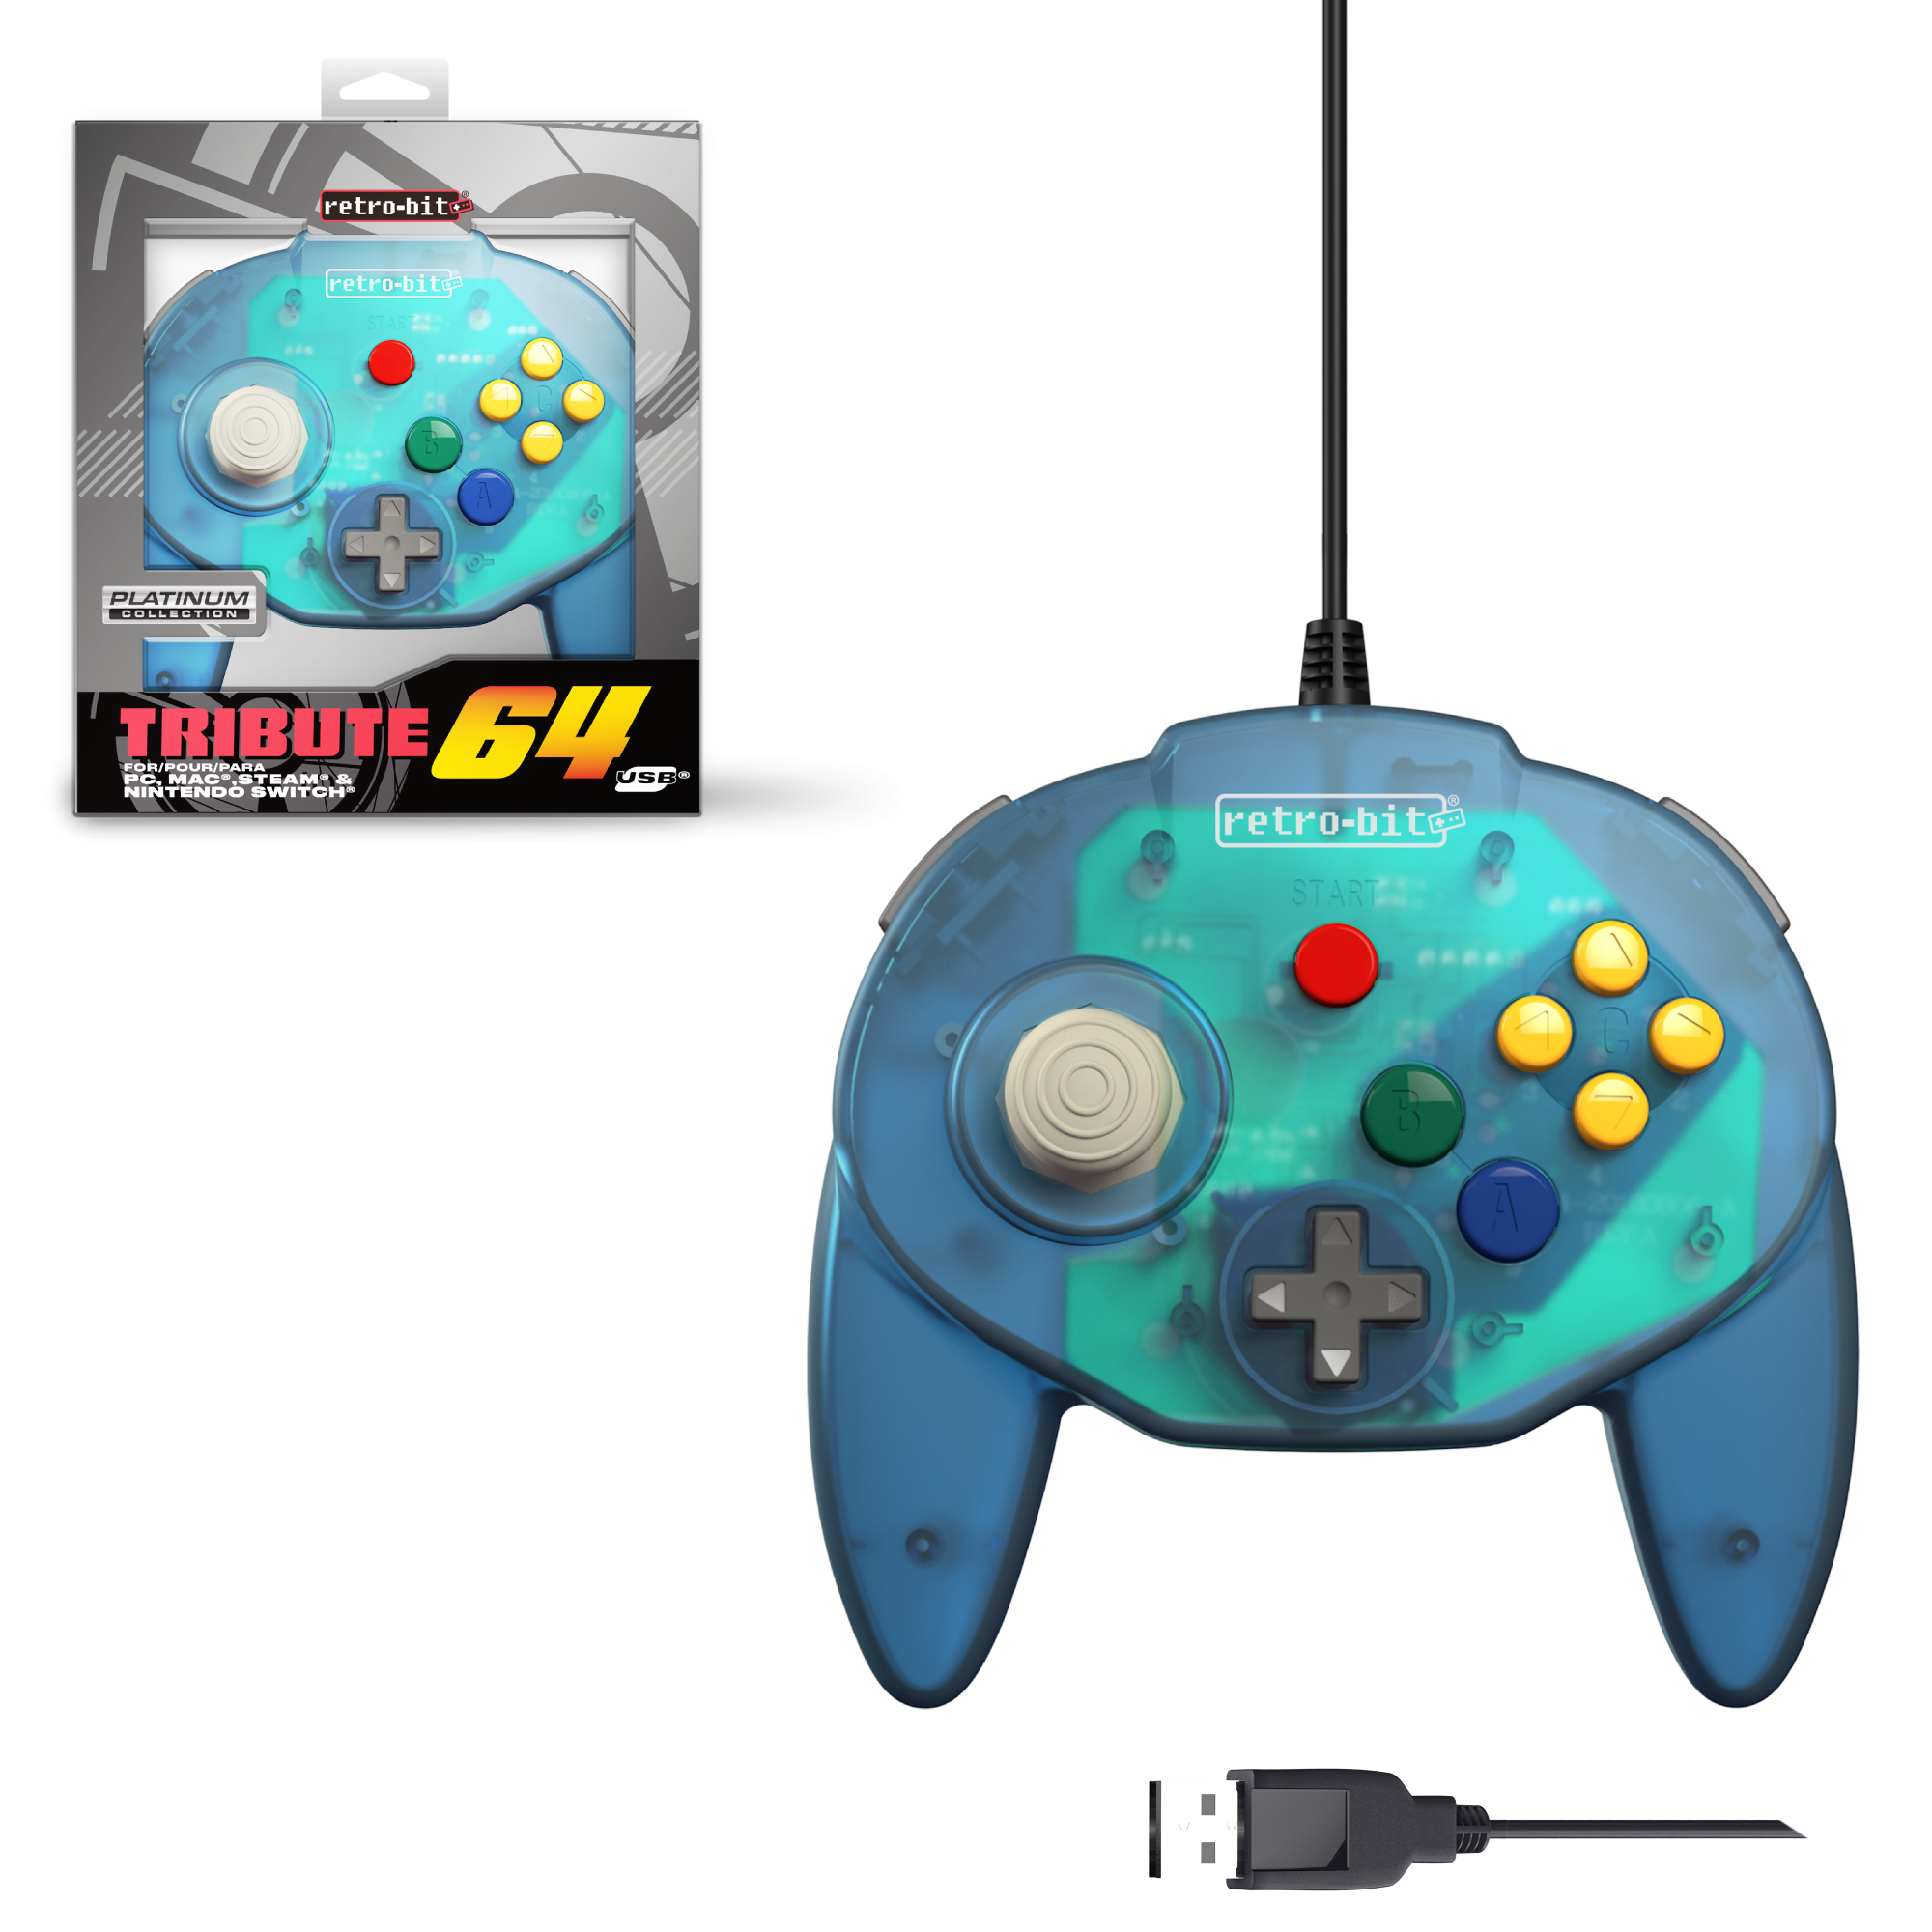 Tribute64 Ocean Blue - USB